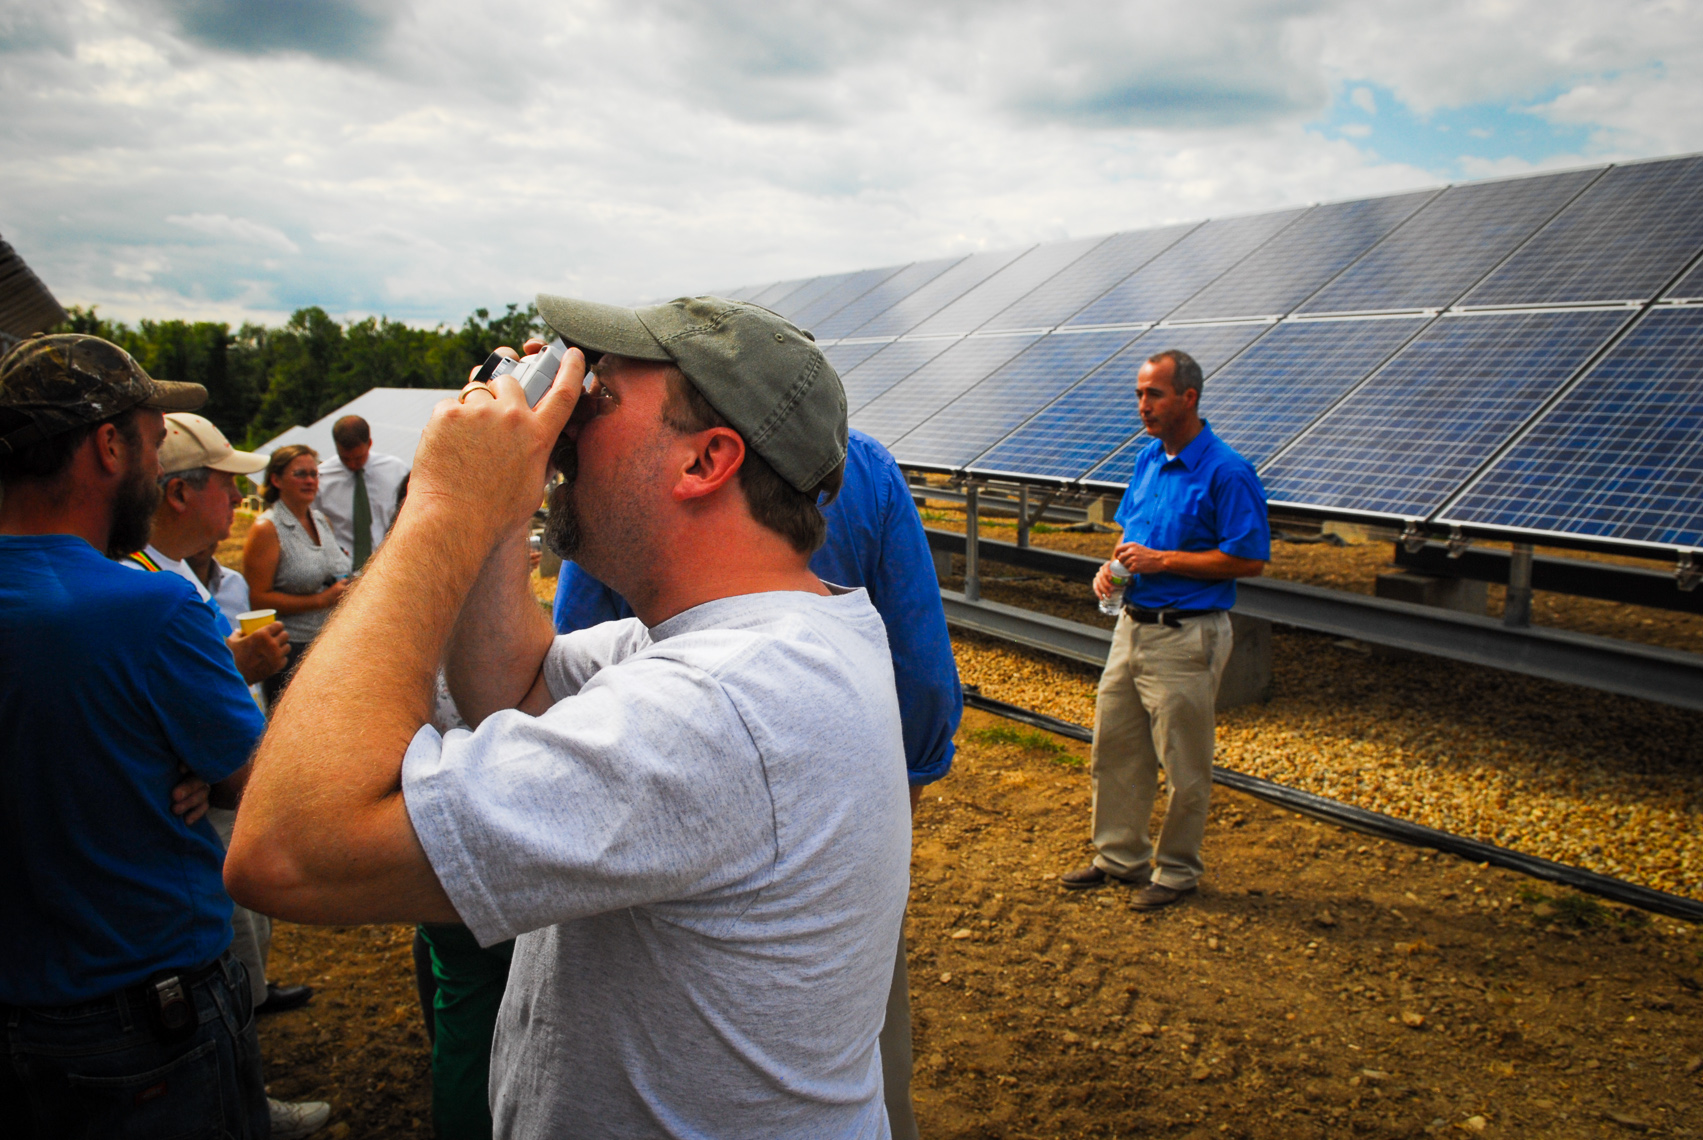 Solar Energy Construction Photographer | Massachusetts Industrial Photography